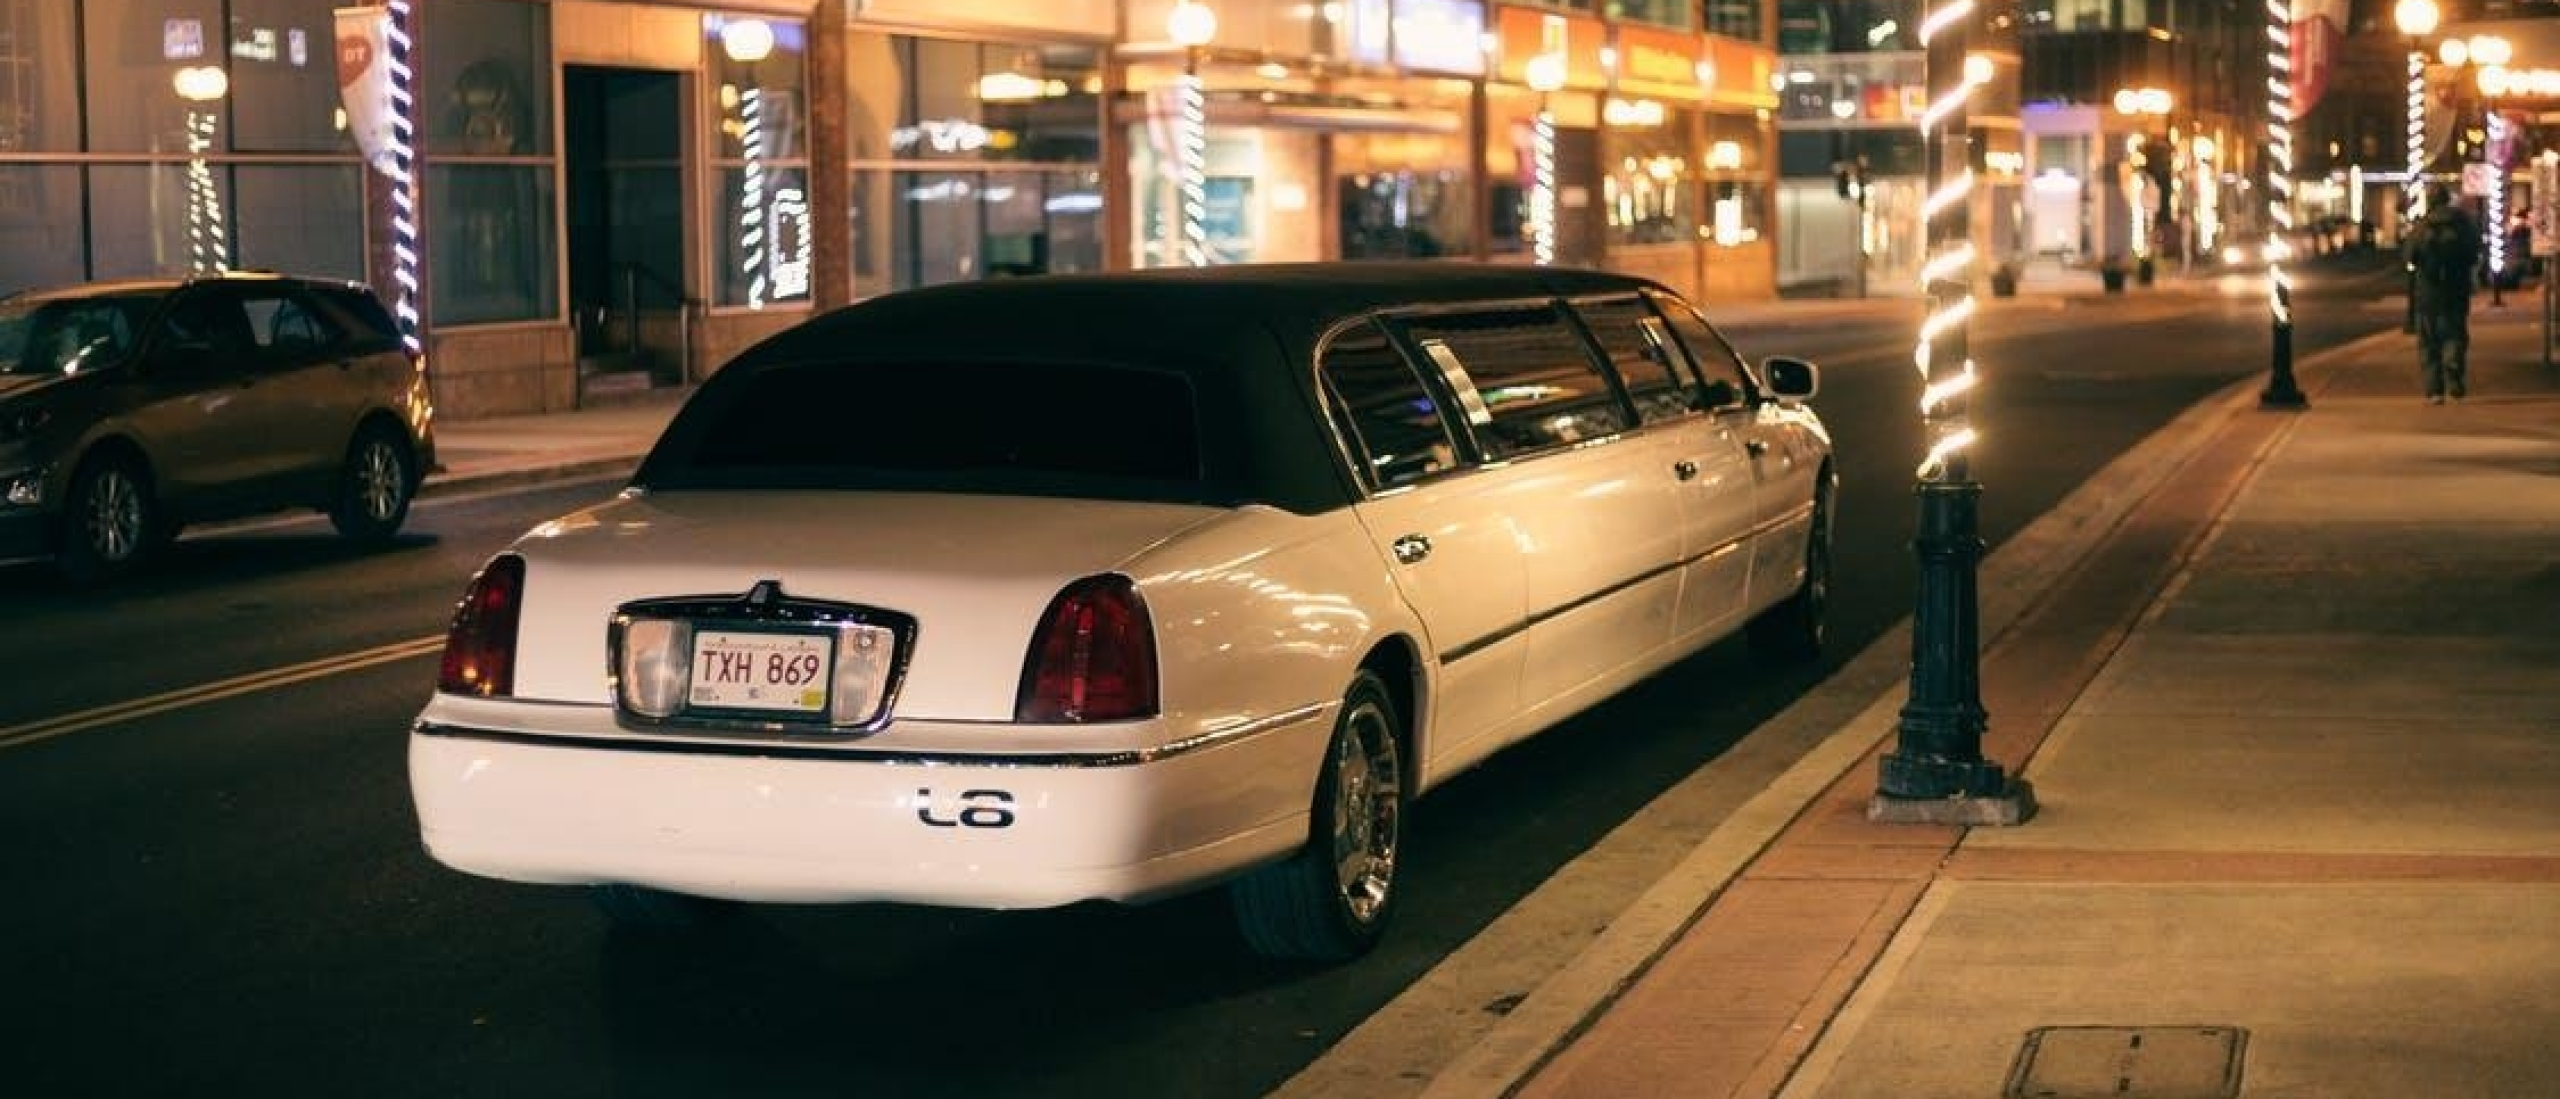 Unconventional Occasions to Hire a Limo Service For